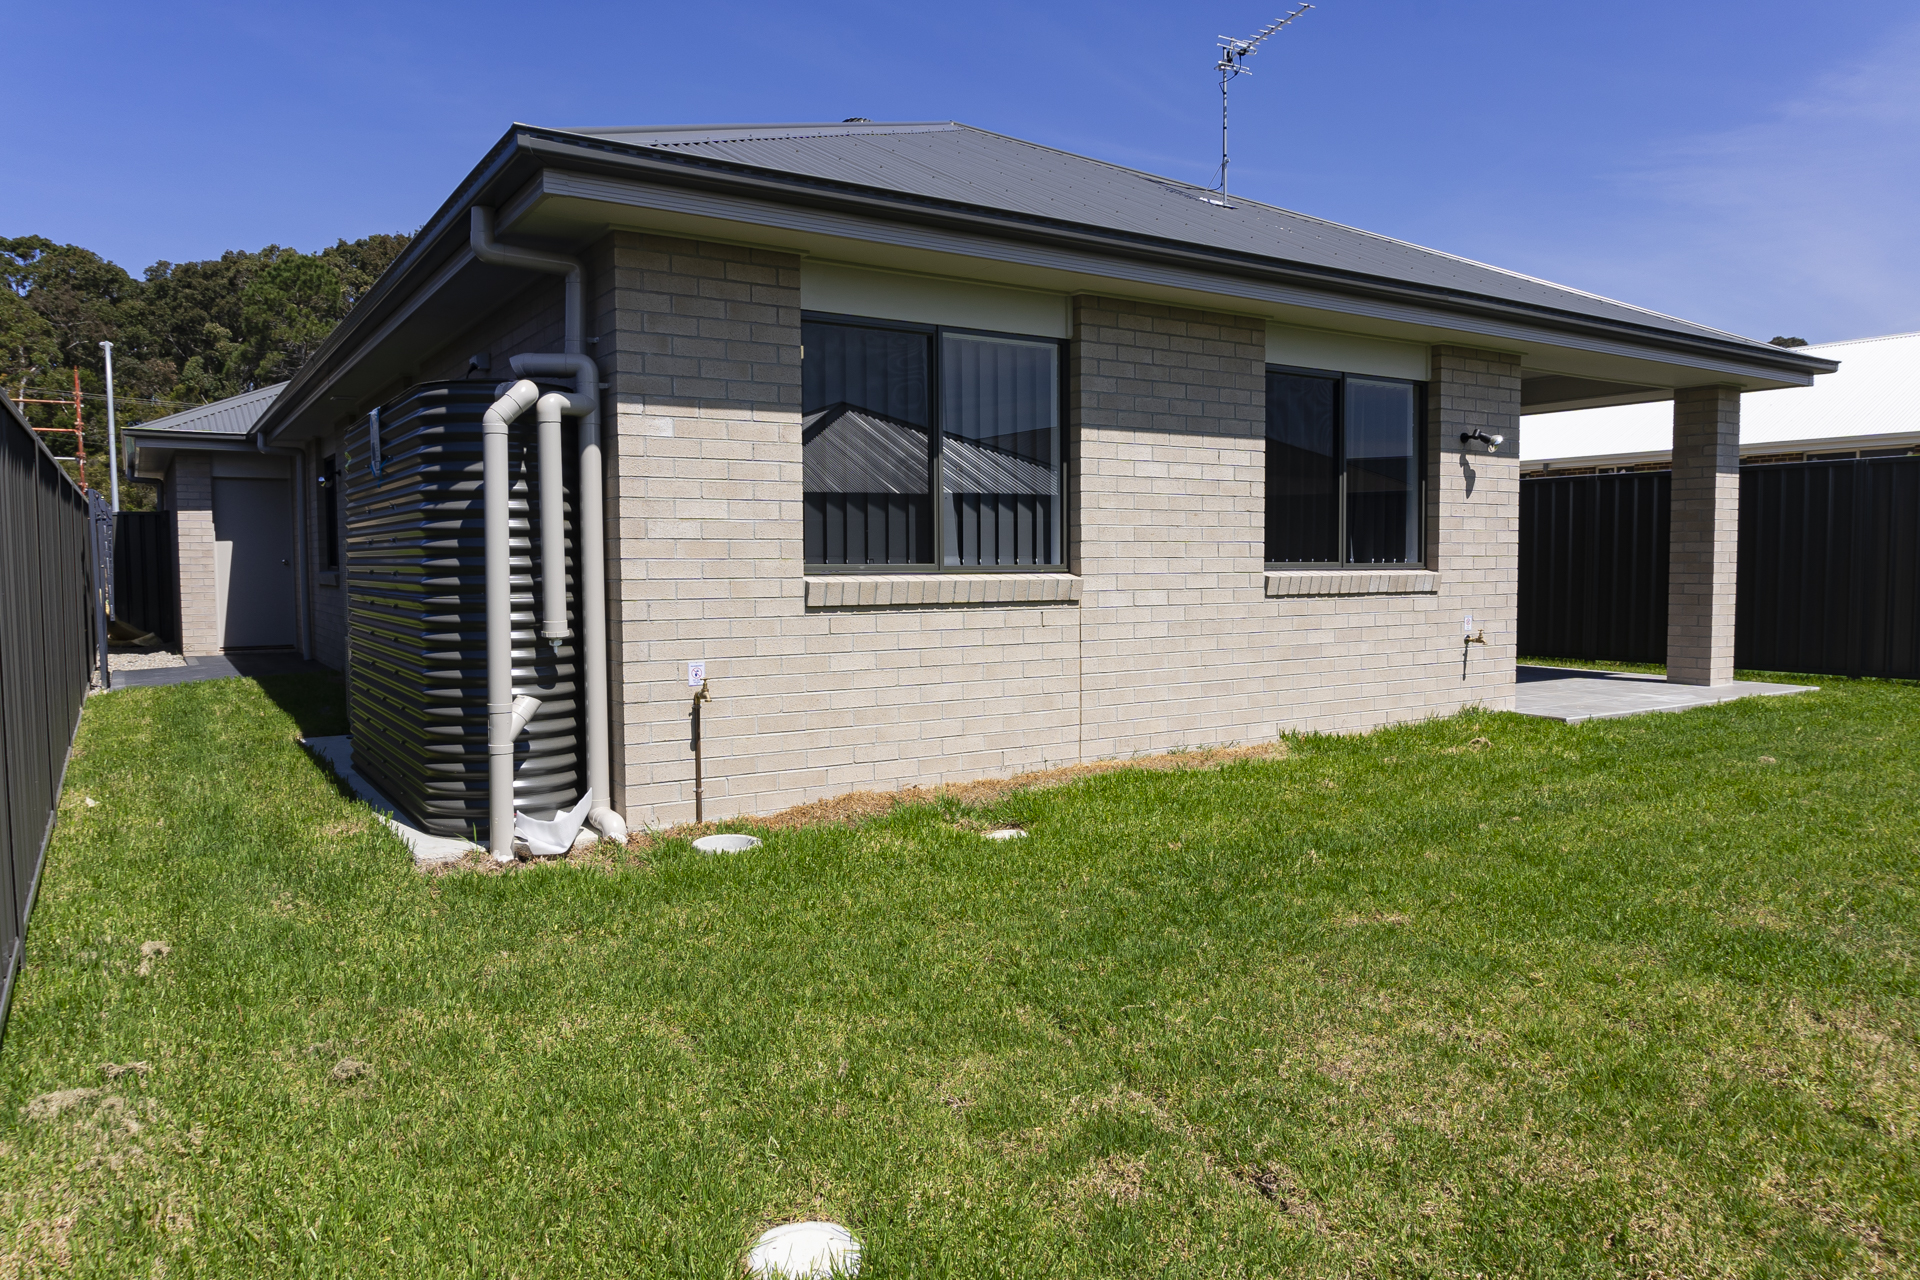 Lot 142, Hamlyn Terrace NSW 2259